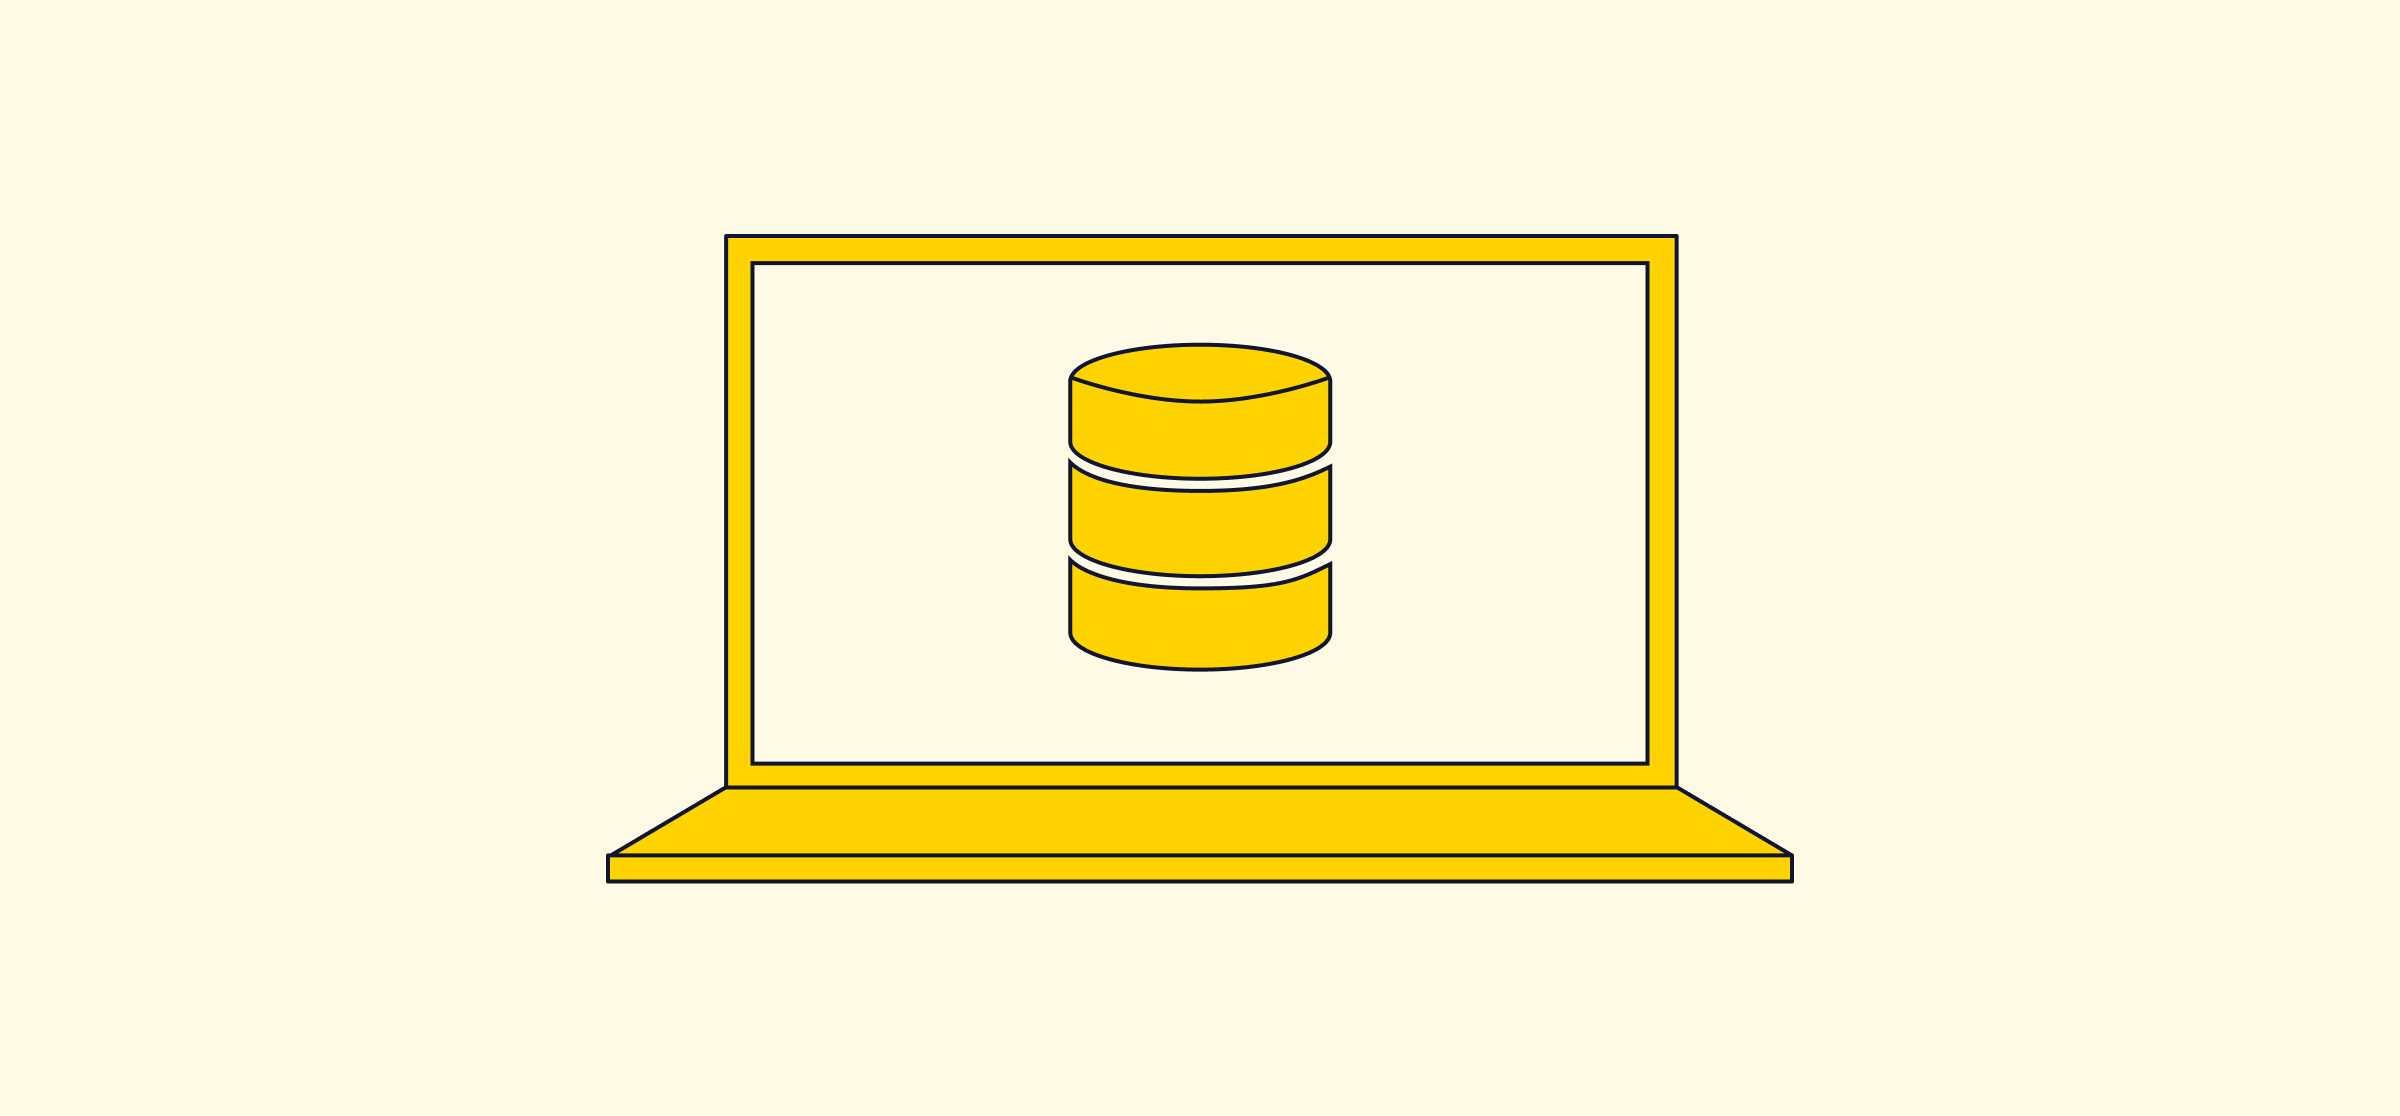 10 SQL Code Challenges for Beginners